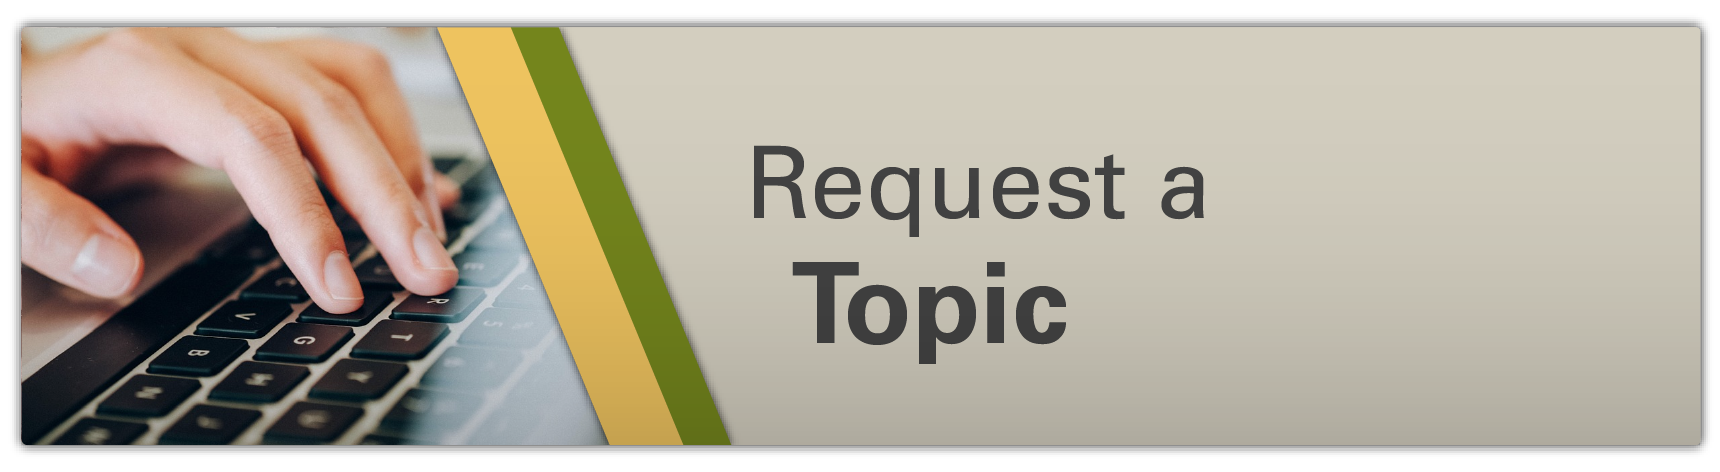 Request a Topic